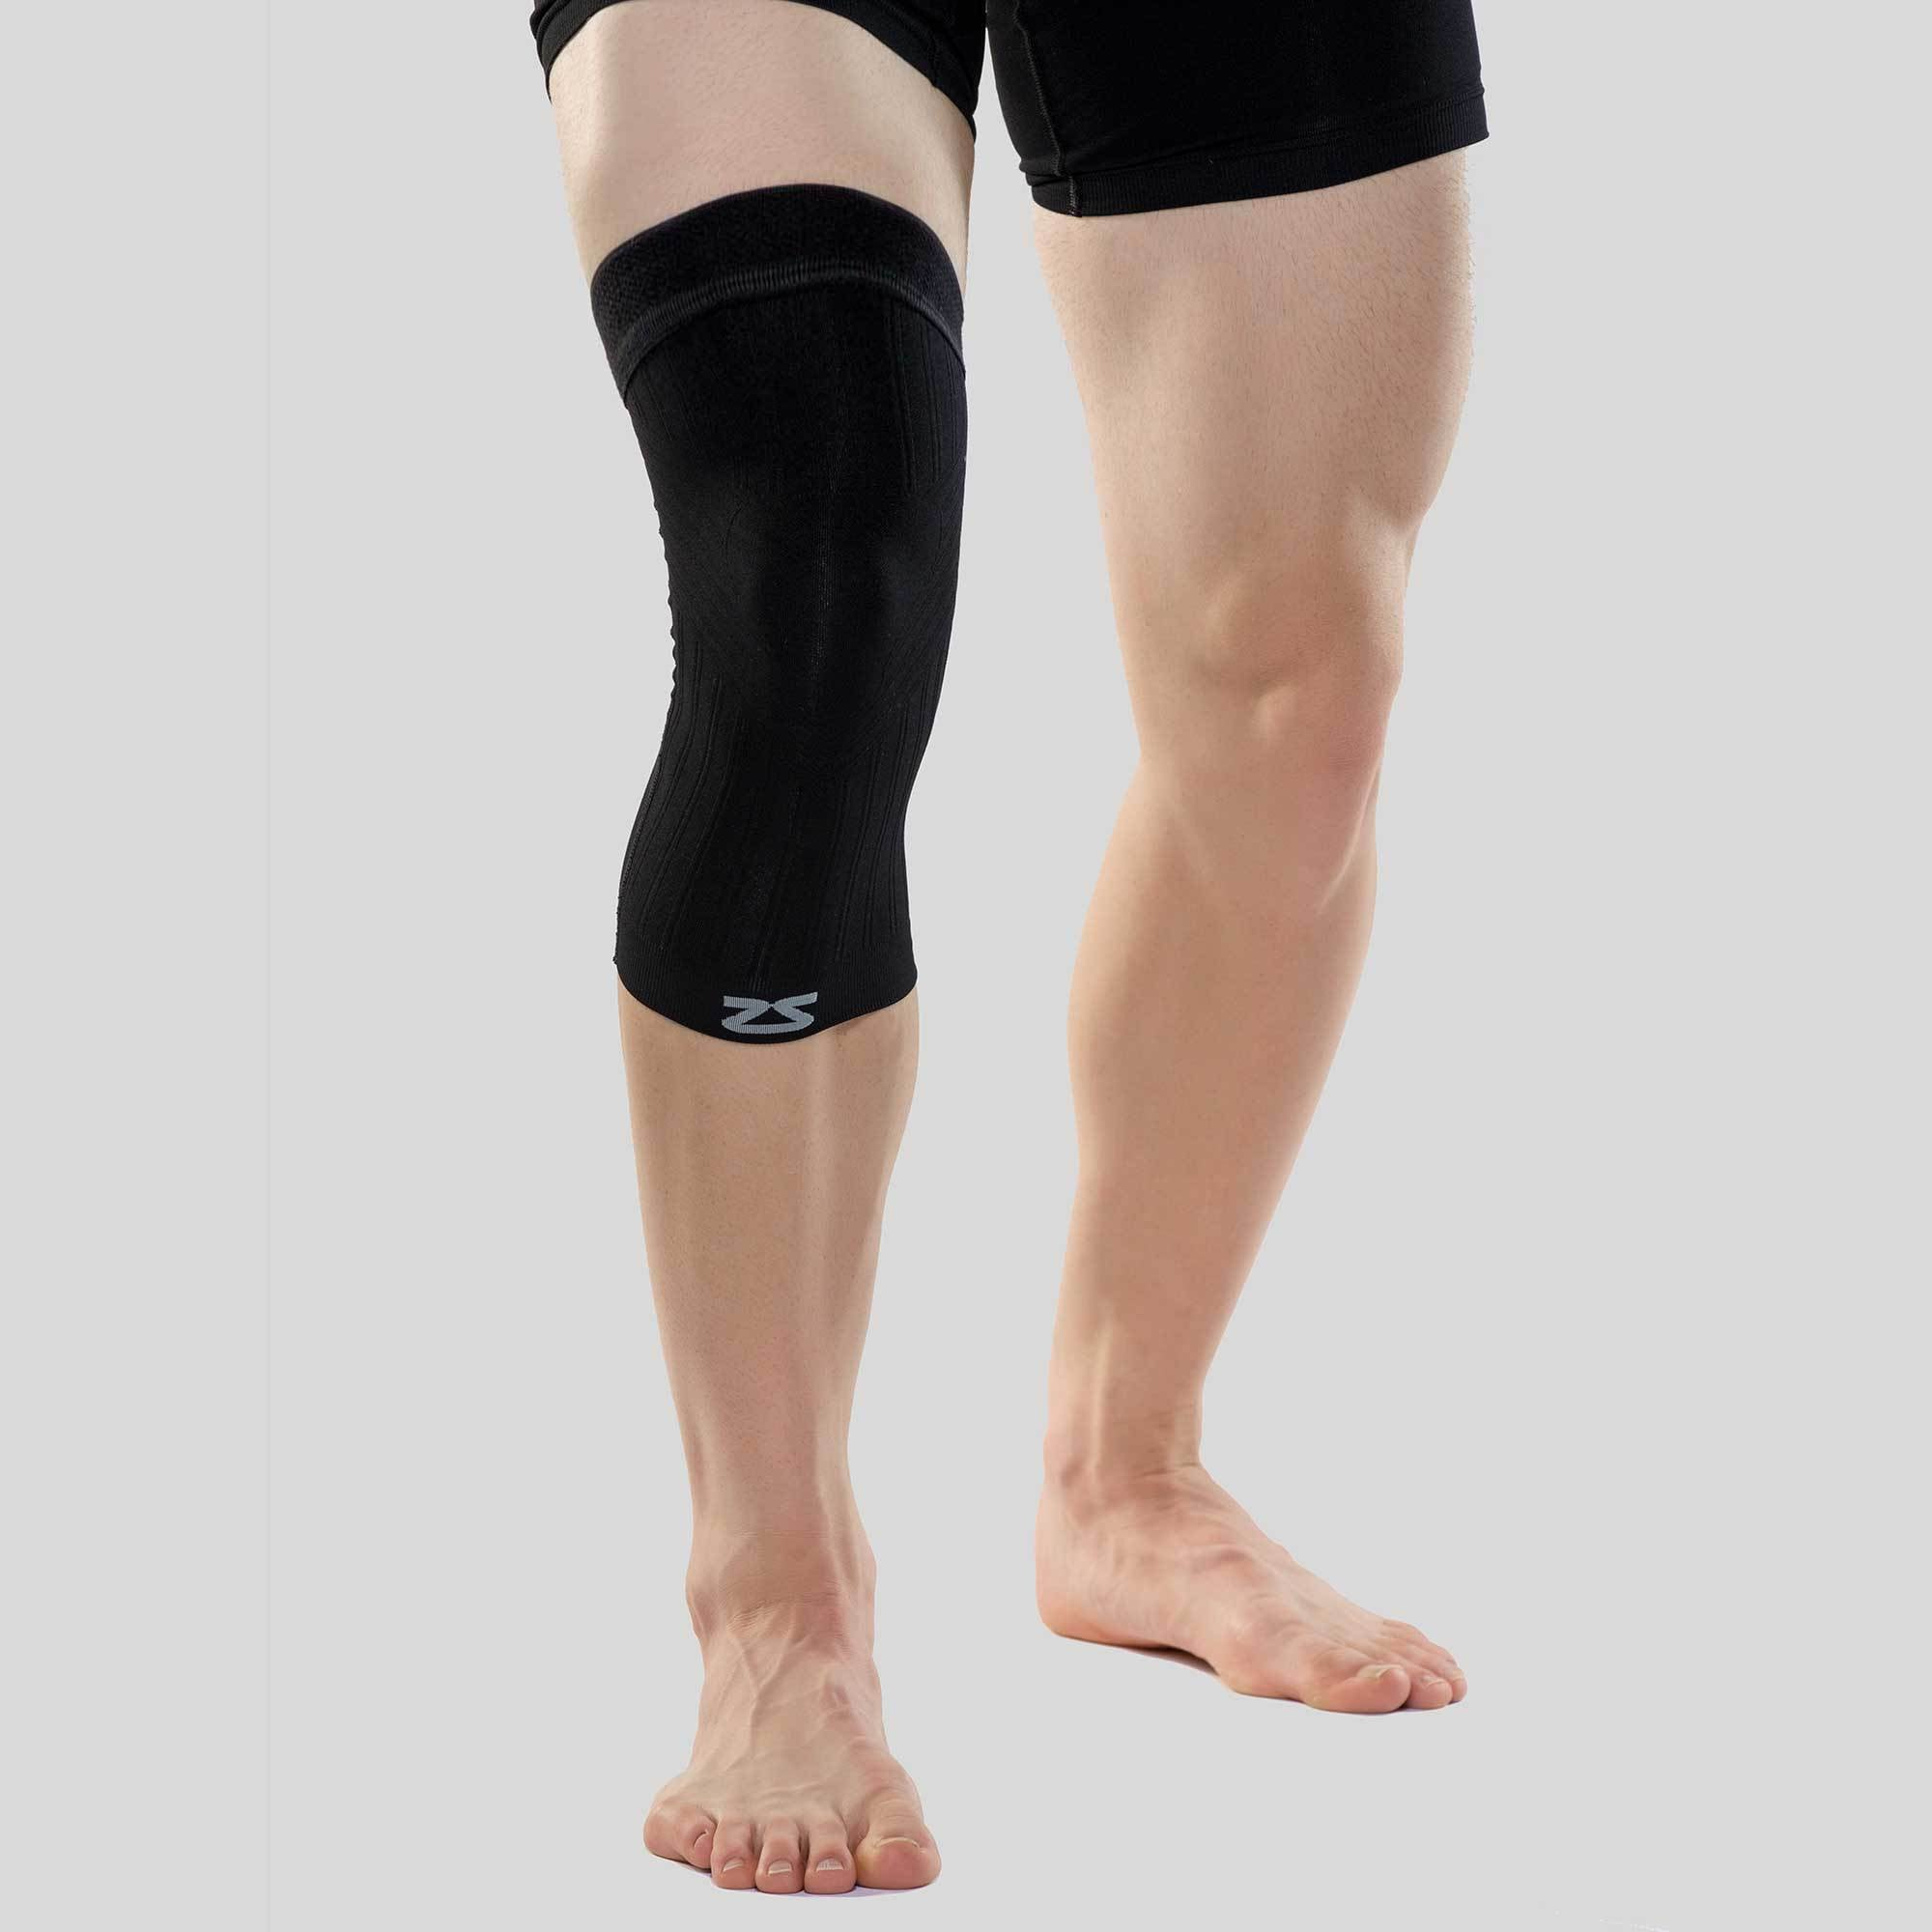 82016a223474 Compression Knee Sleeve